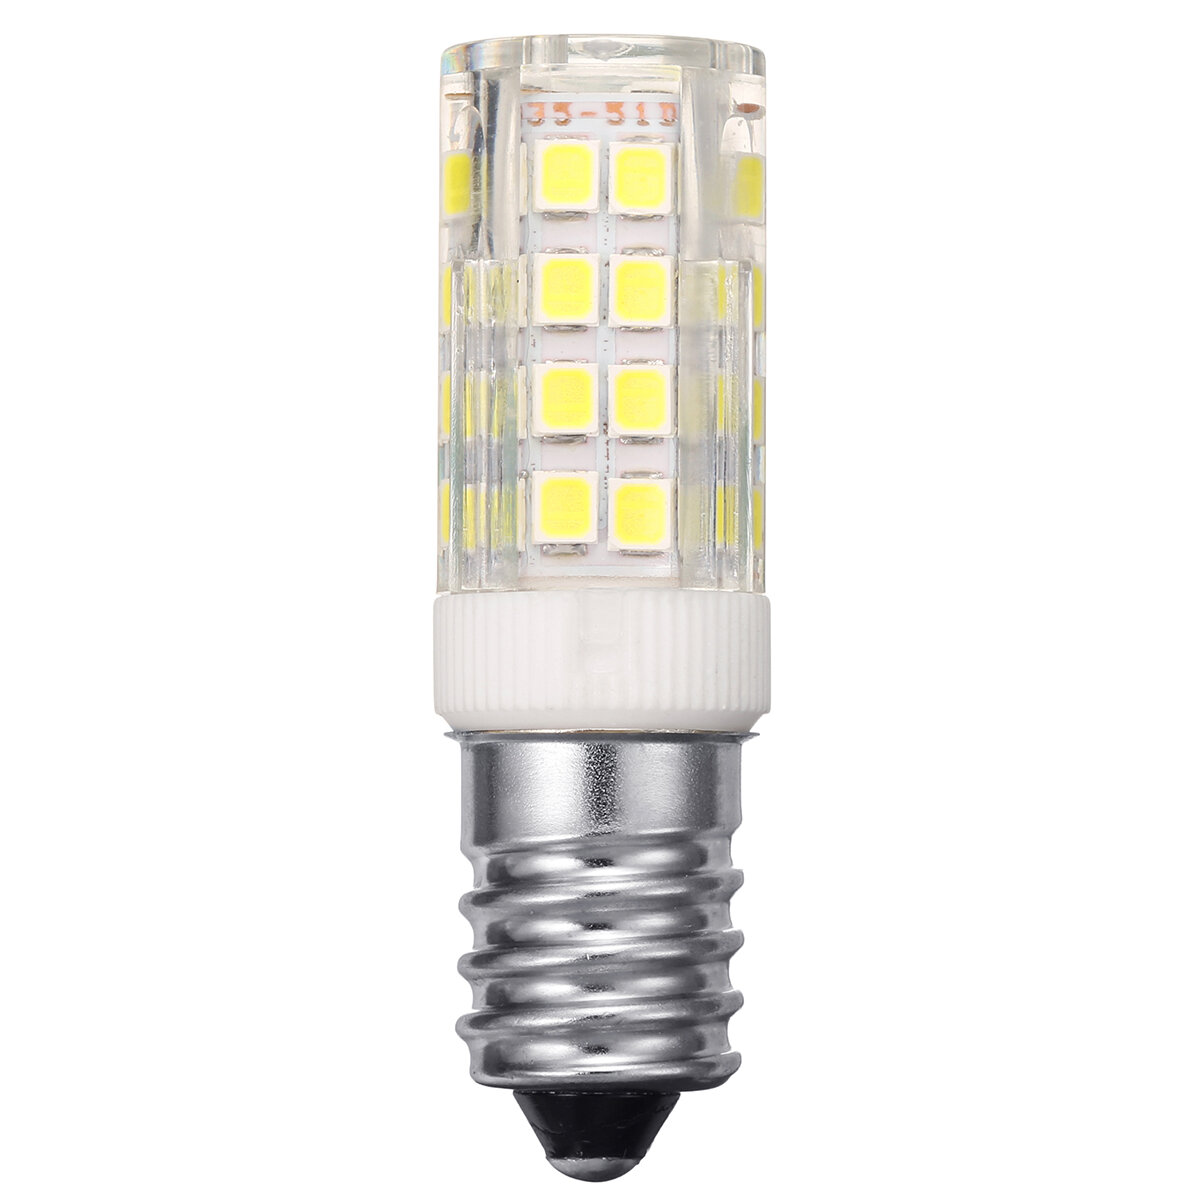 AC110-240V 9W G9 SMD2835 Non-dimmable 75 LED Ceramic Corn Light Bulb for Outdoor Home Decoration - 6